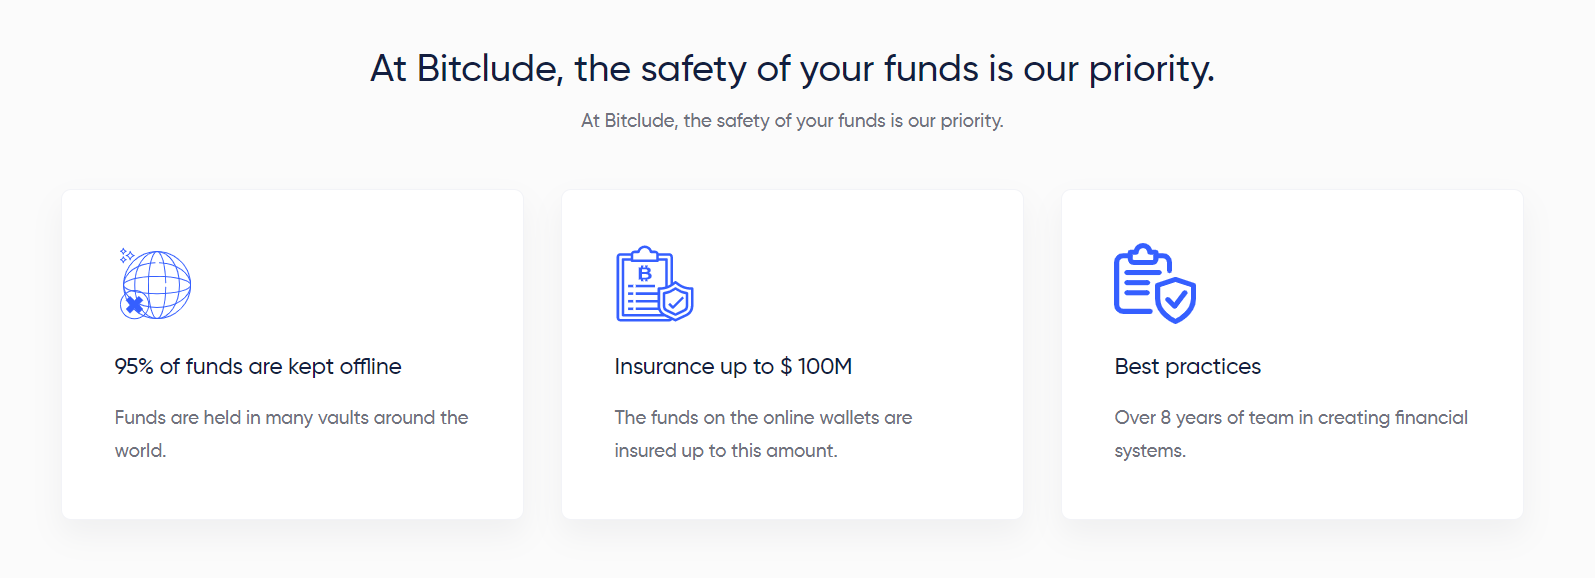 BitClude Safety